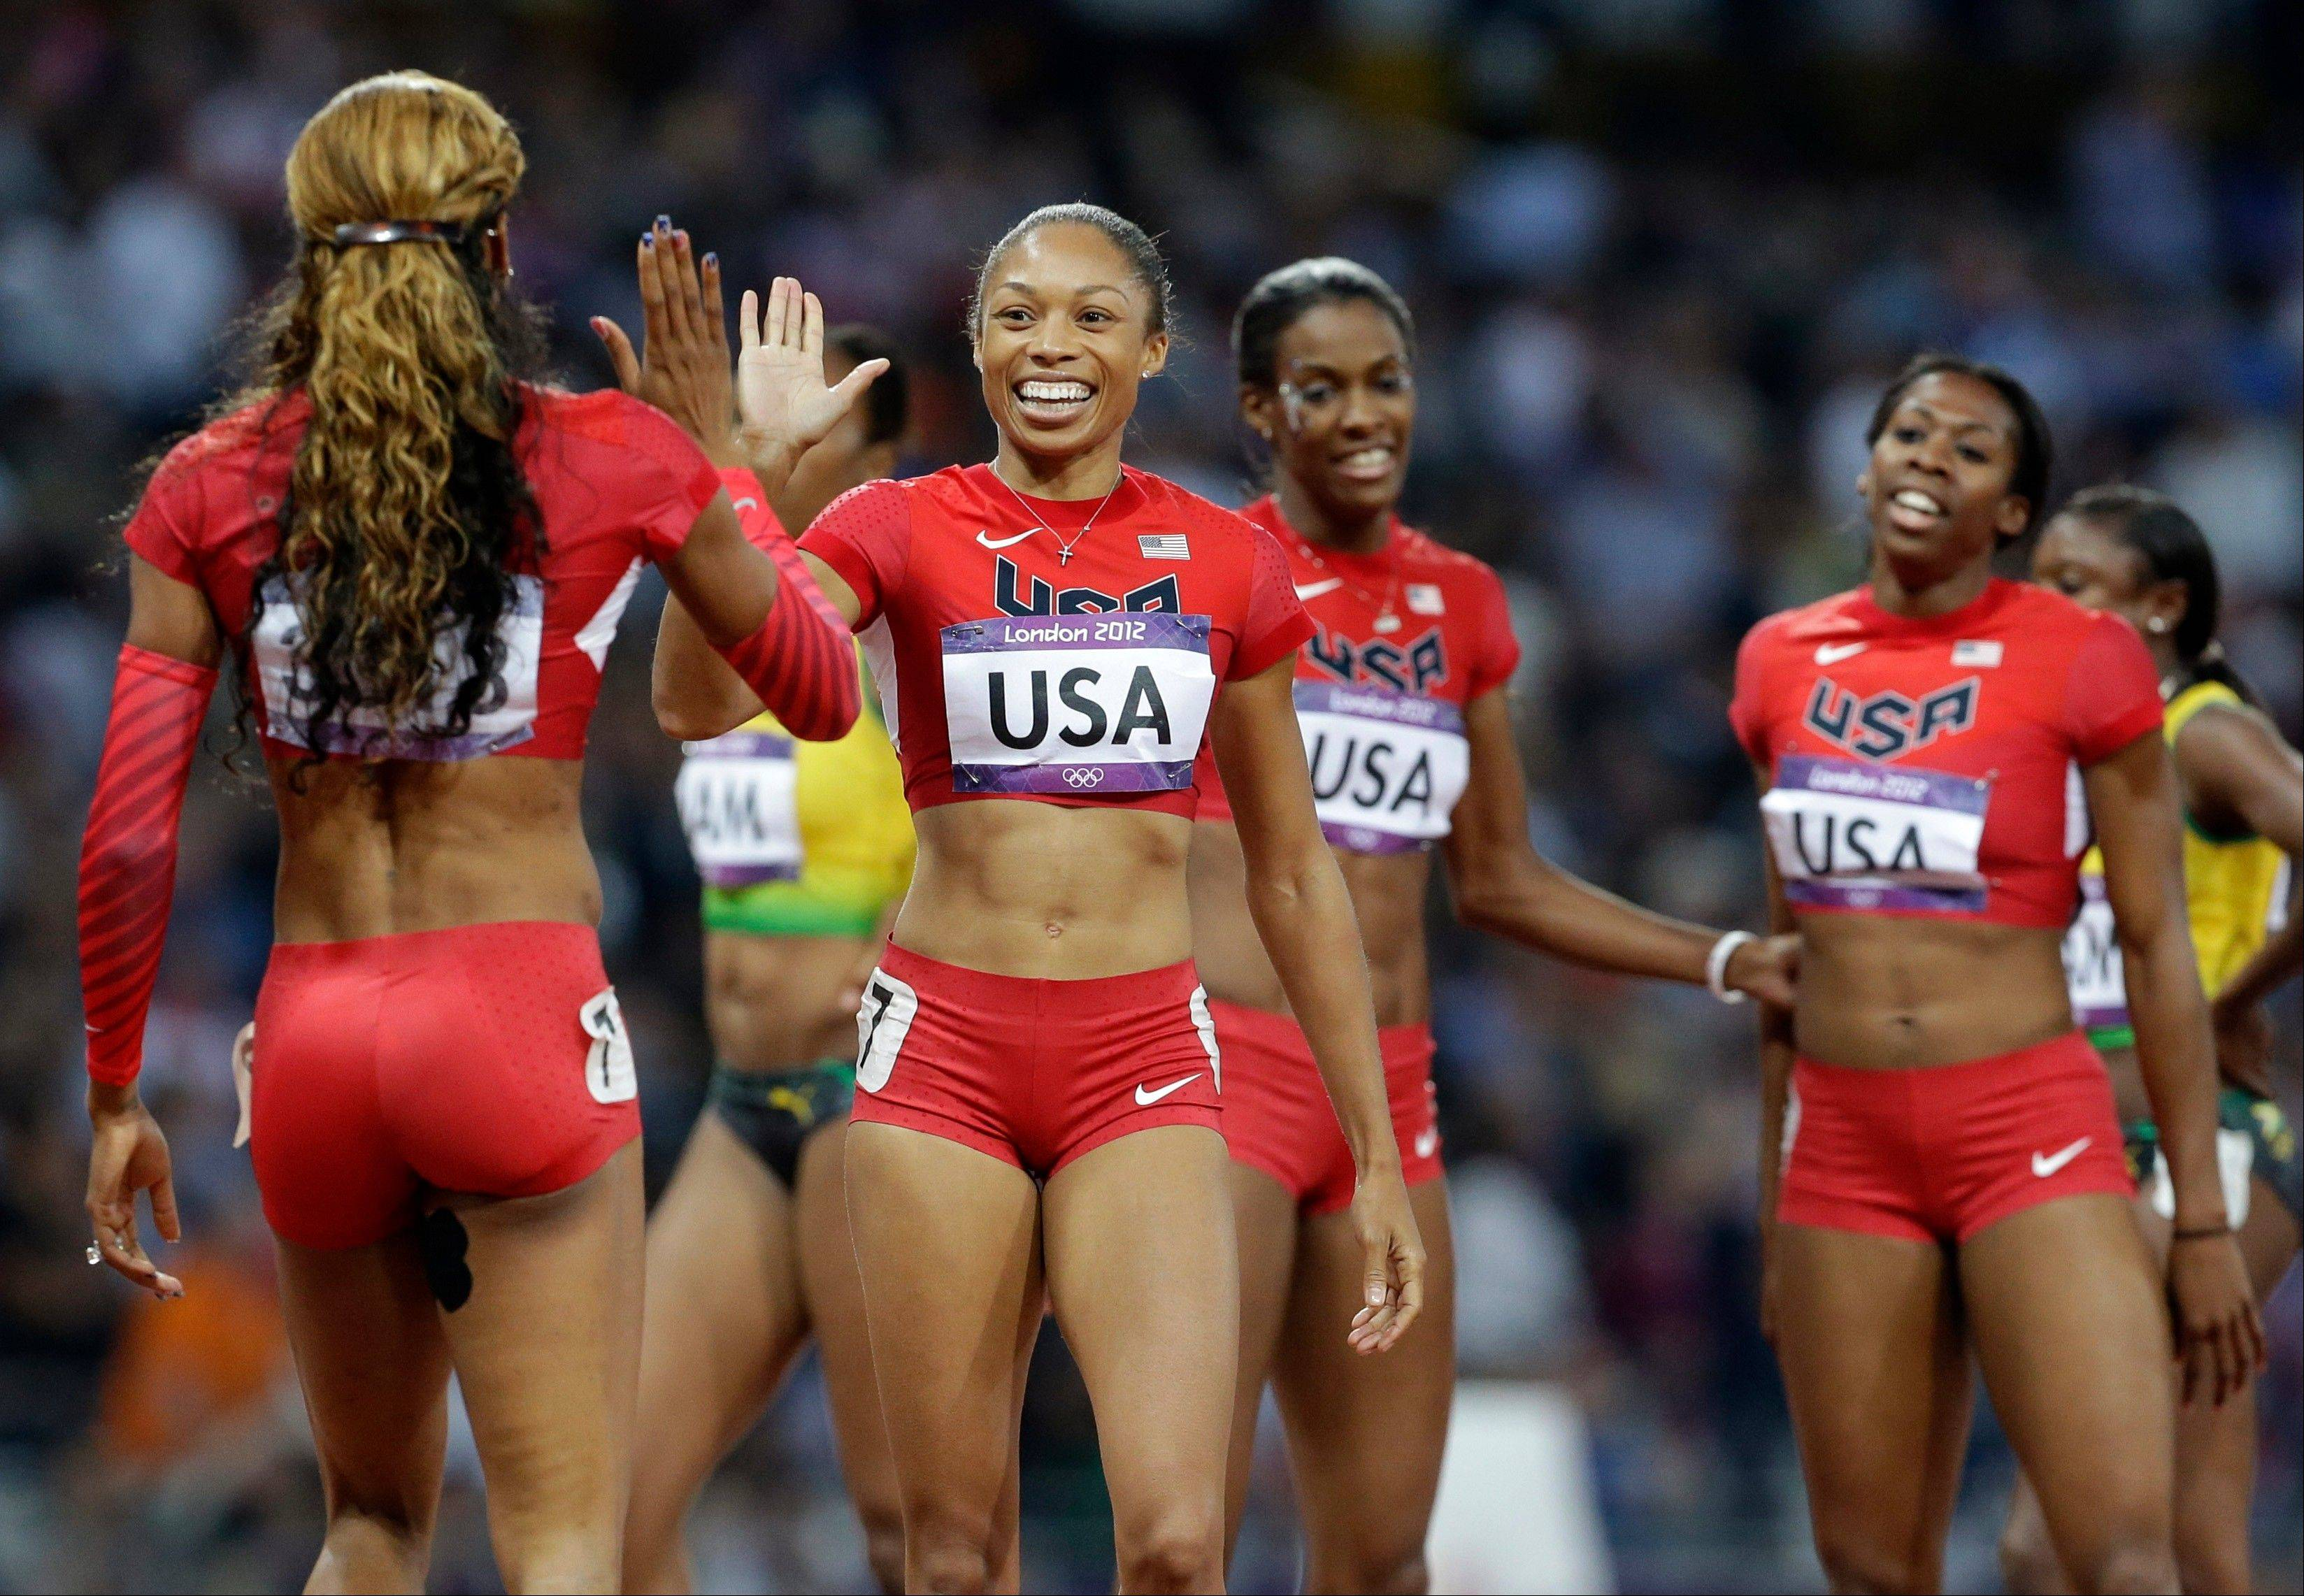 United States' Sanya Richards-Ross, left, celebrates with teammate United States' Allyson Felix, second left, with teammates Francena McCorory, right, and Deedee Trotter after their gold medal win in the women's 4 x 400-meter relay during the athletics in the Olympic Stadium at the 2012 Summer Olympics, London, Saturday, Aug. 11, 2012.